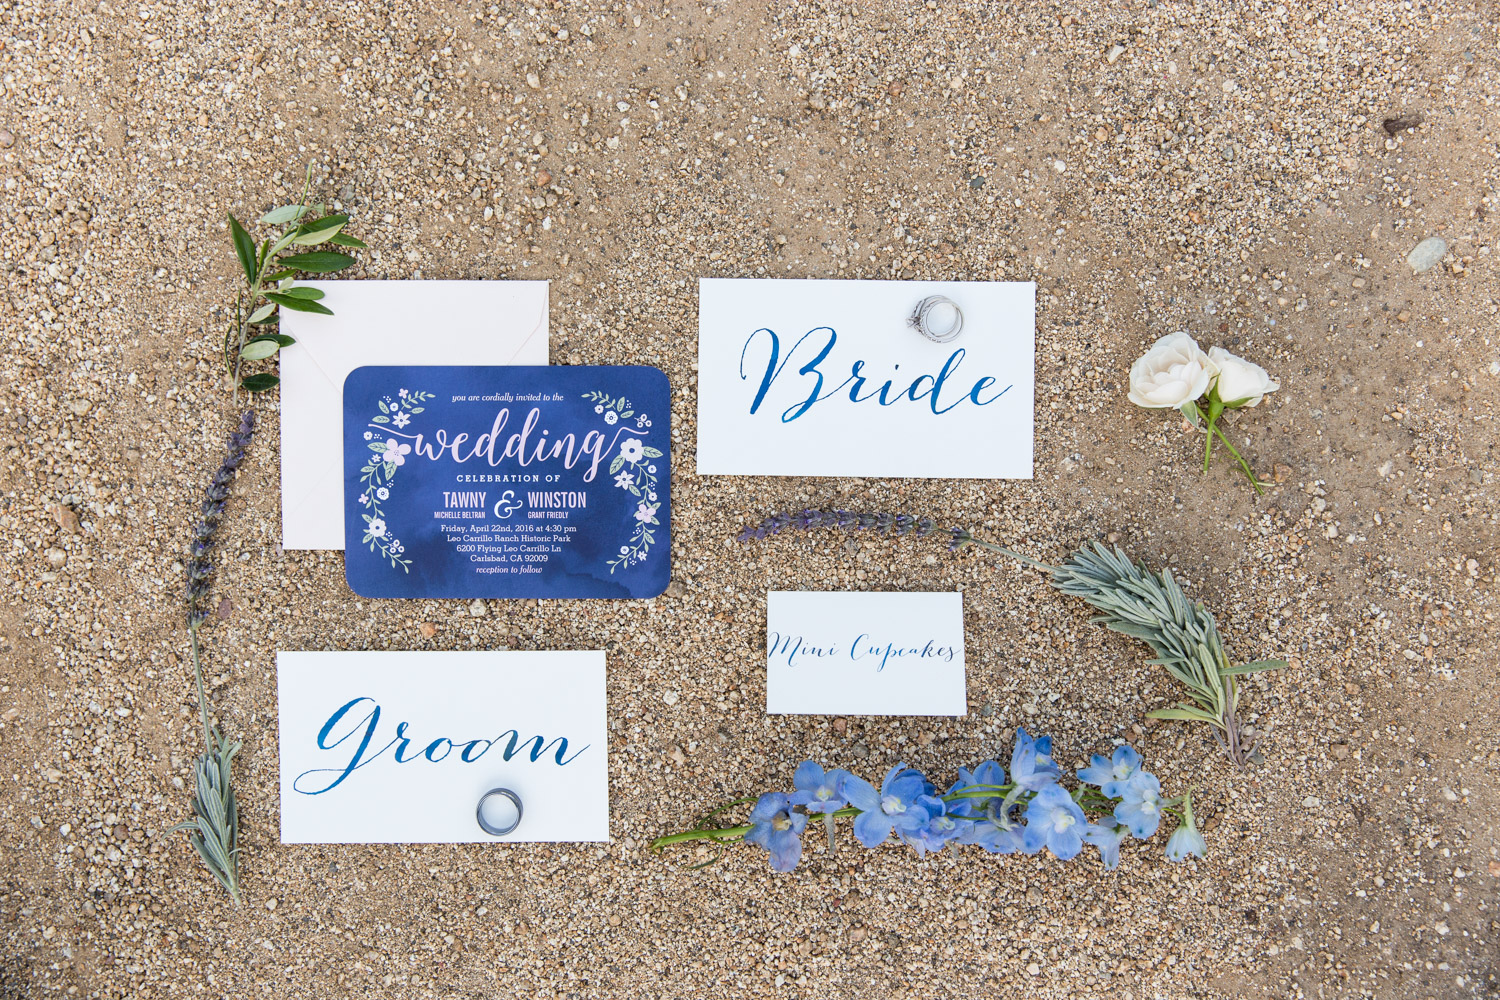 Navy blue and white wedding invitation suite with bride and groom calligraphy cards